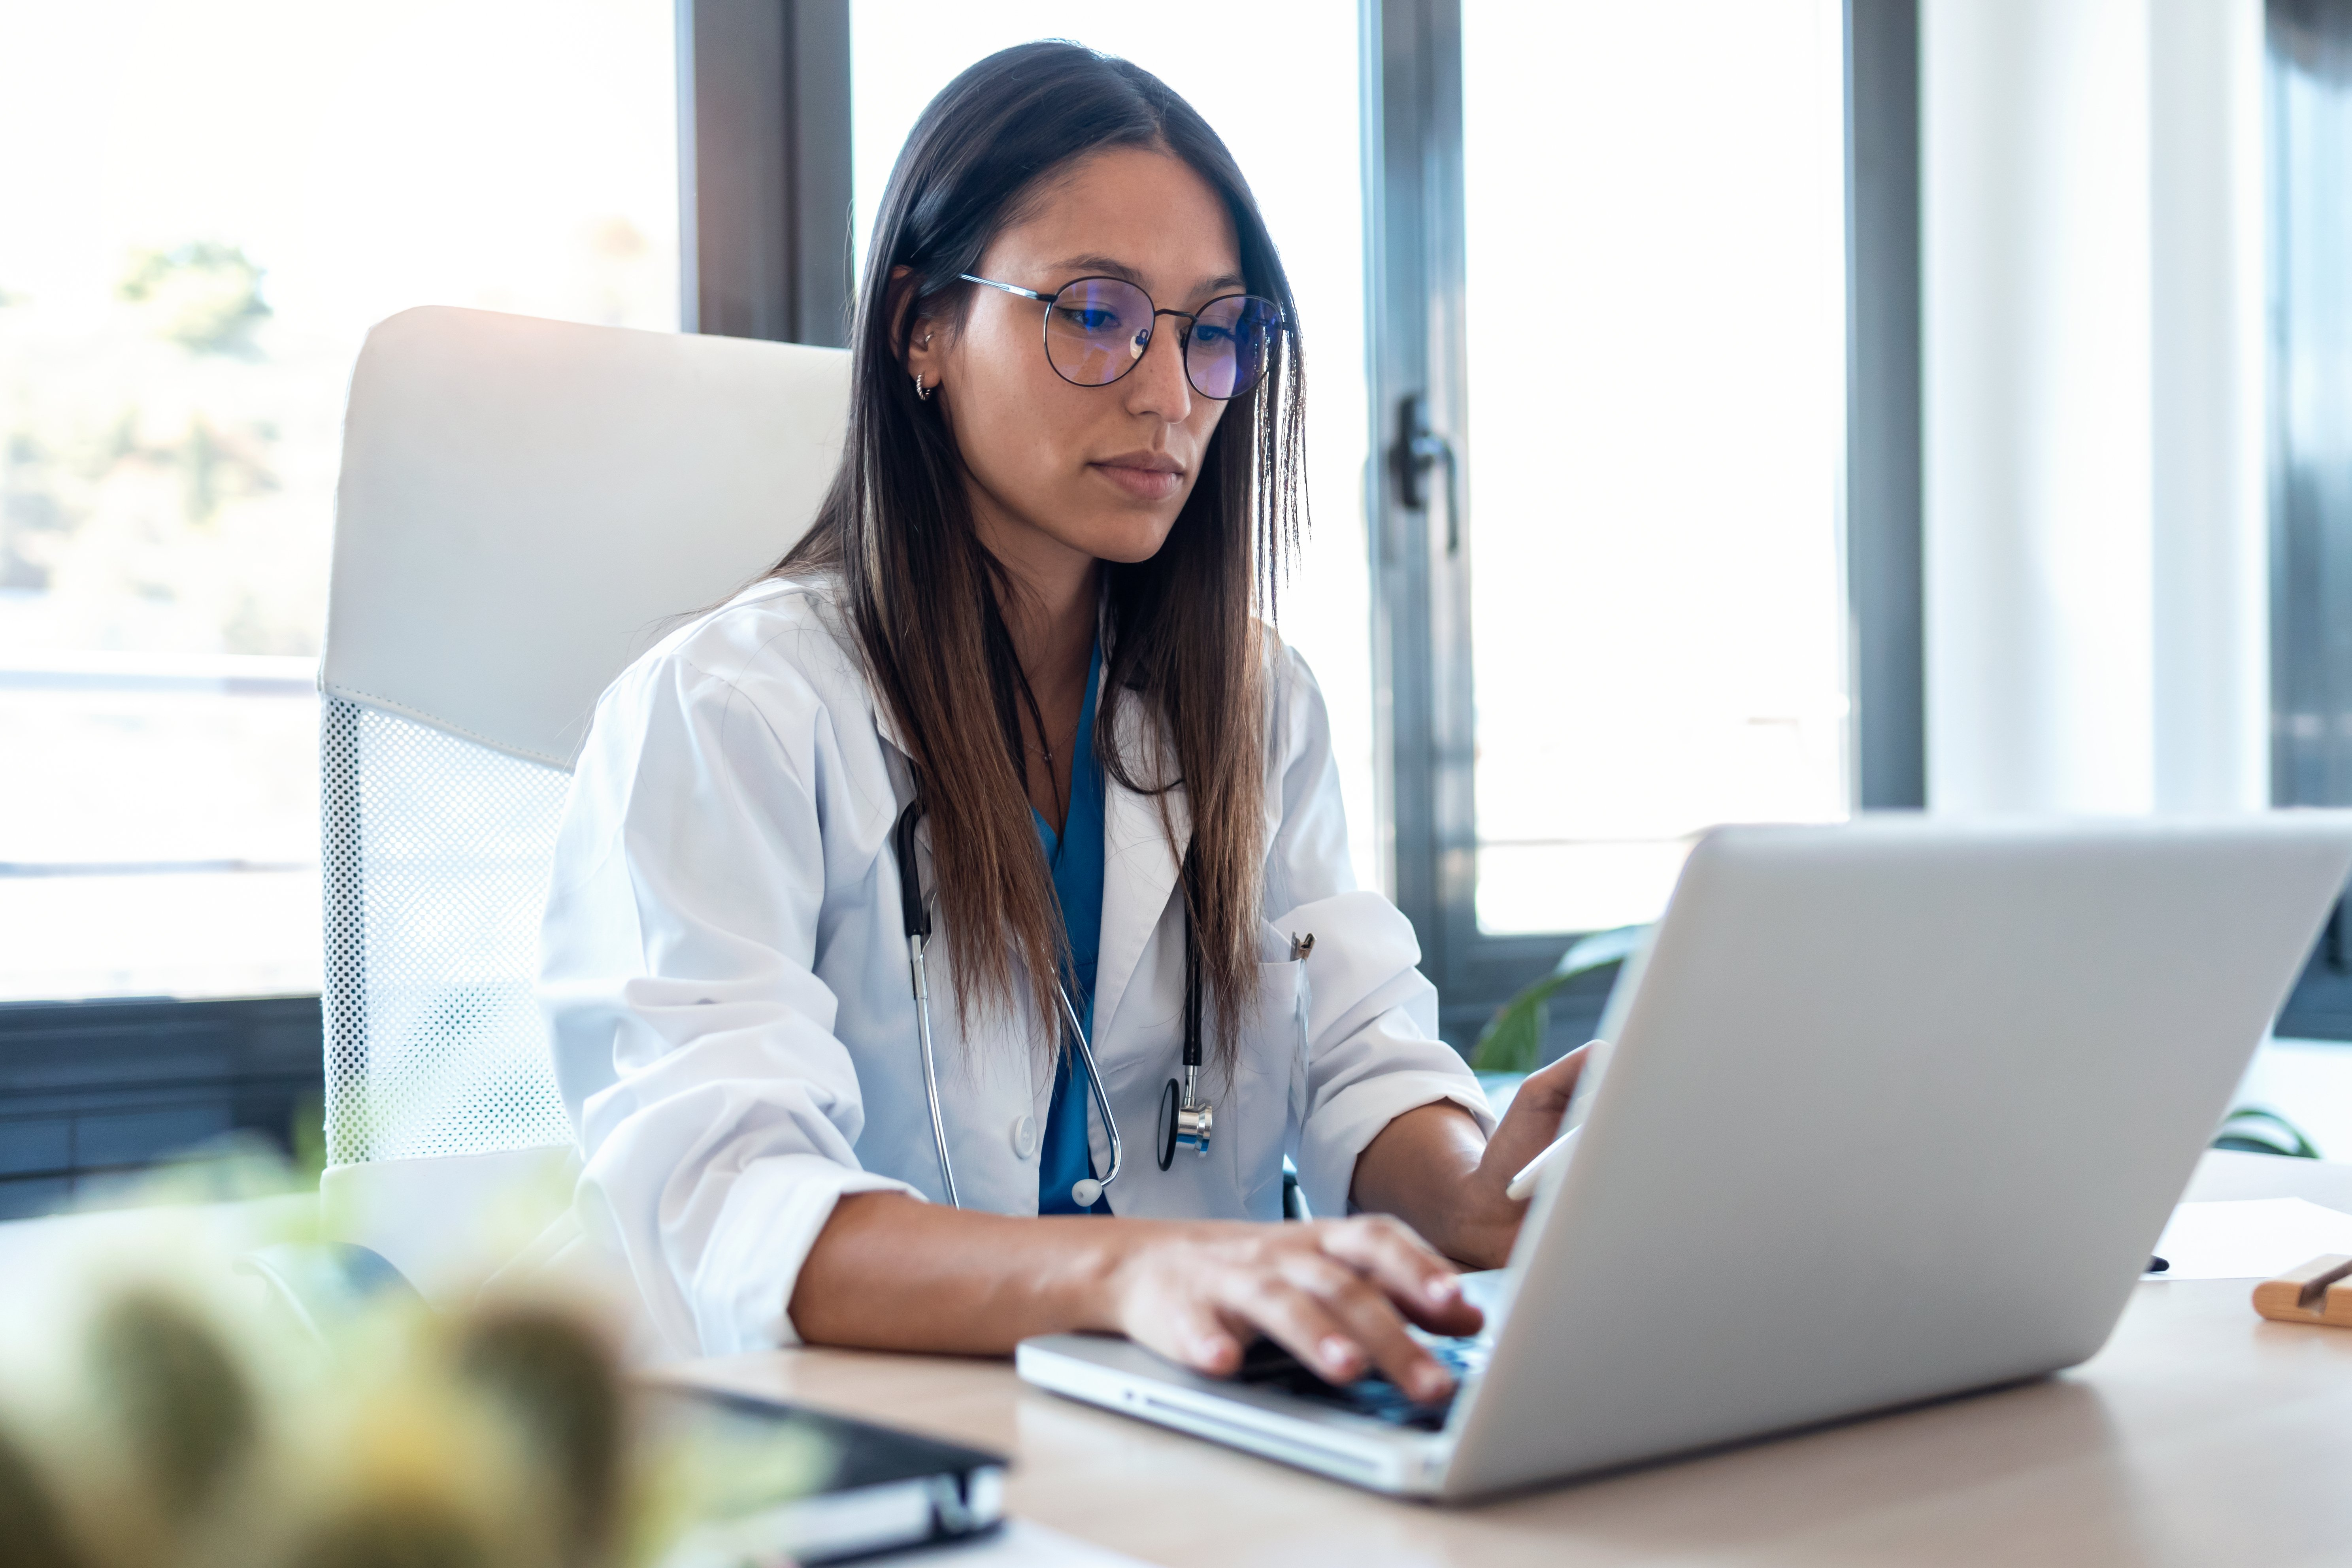 pharmacist on computer in office